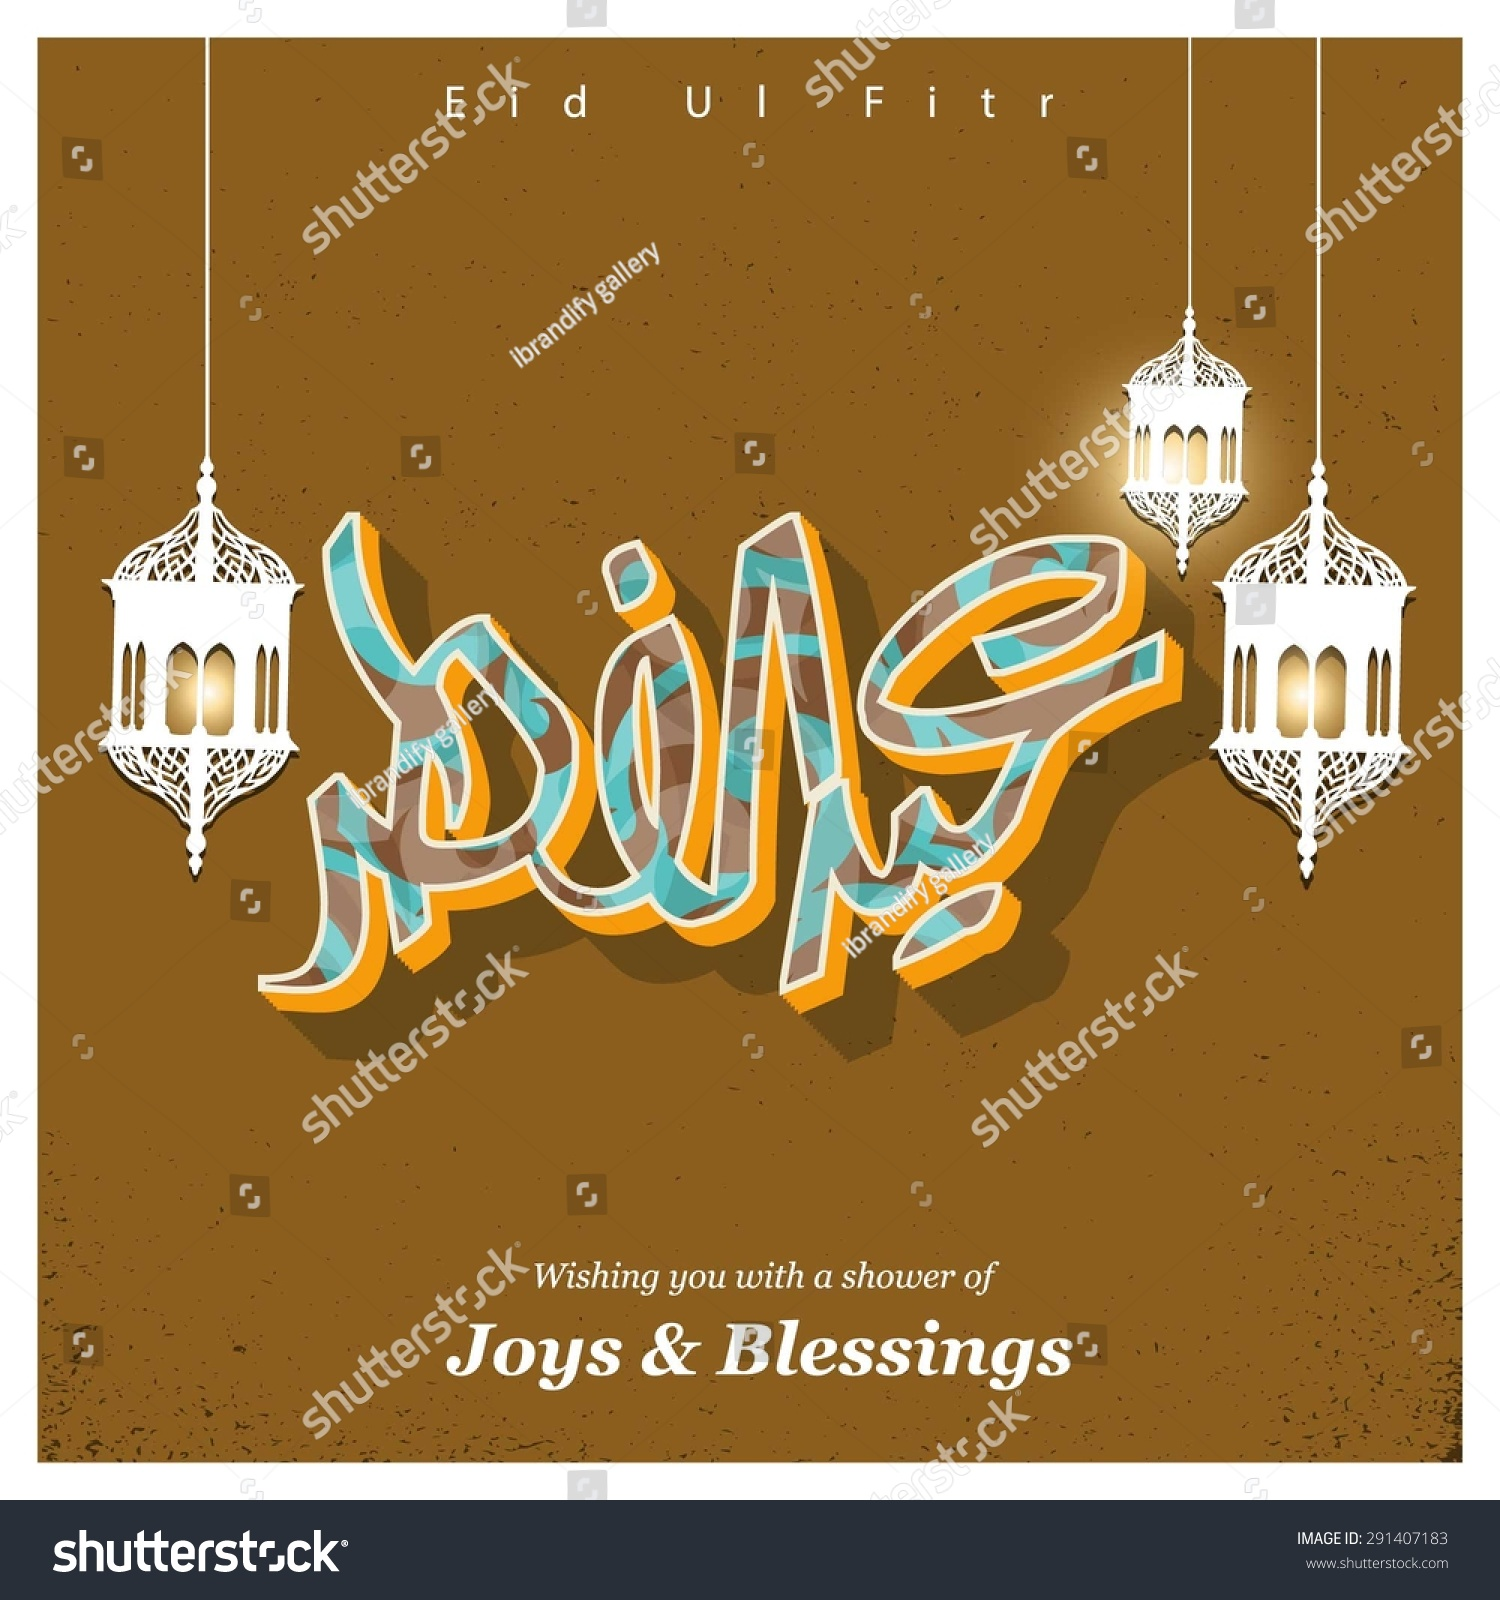 Arabic eidulfitr calligraphy islamic traditional hanging stock arabic eid ul fitr calligraphy and islamic traditional hanging lamps muslim community festival m4hsunfo